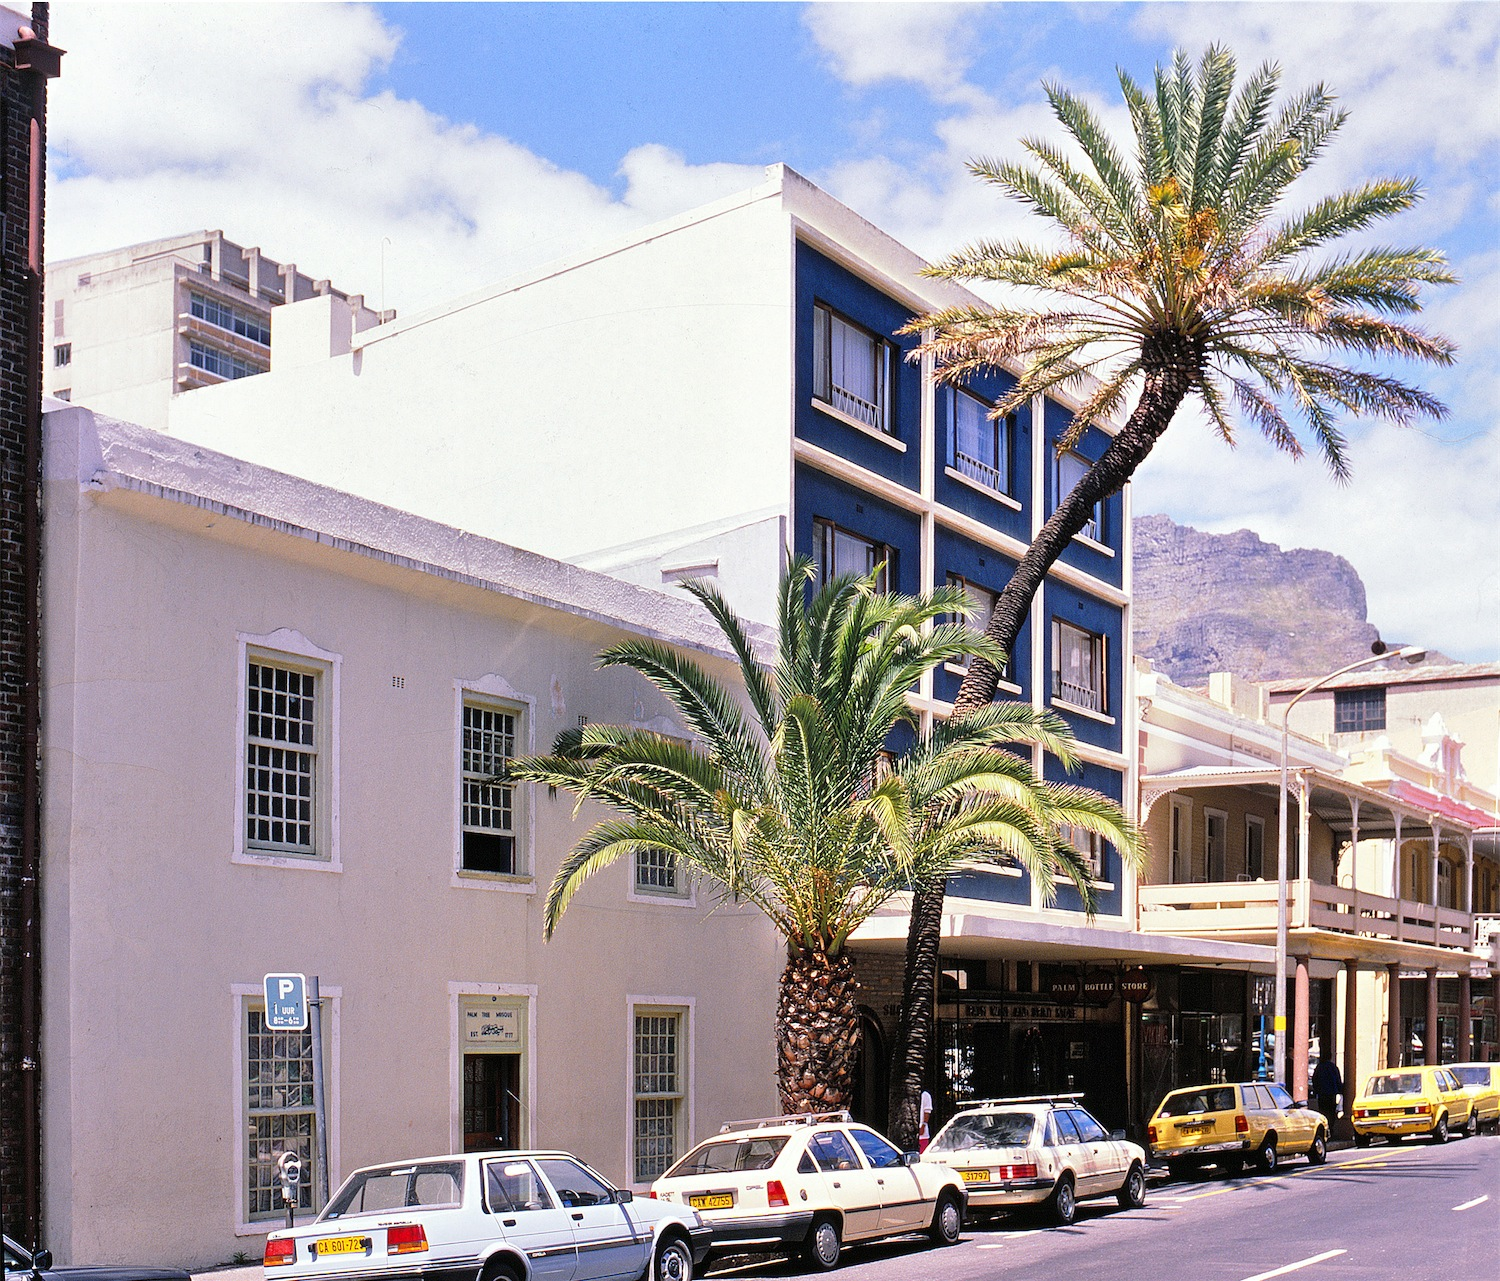 long-street-cape-town-south-africa-cool-street